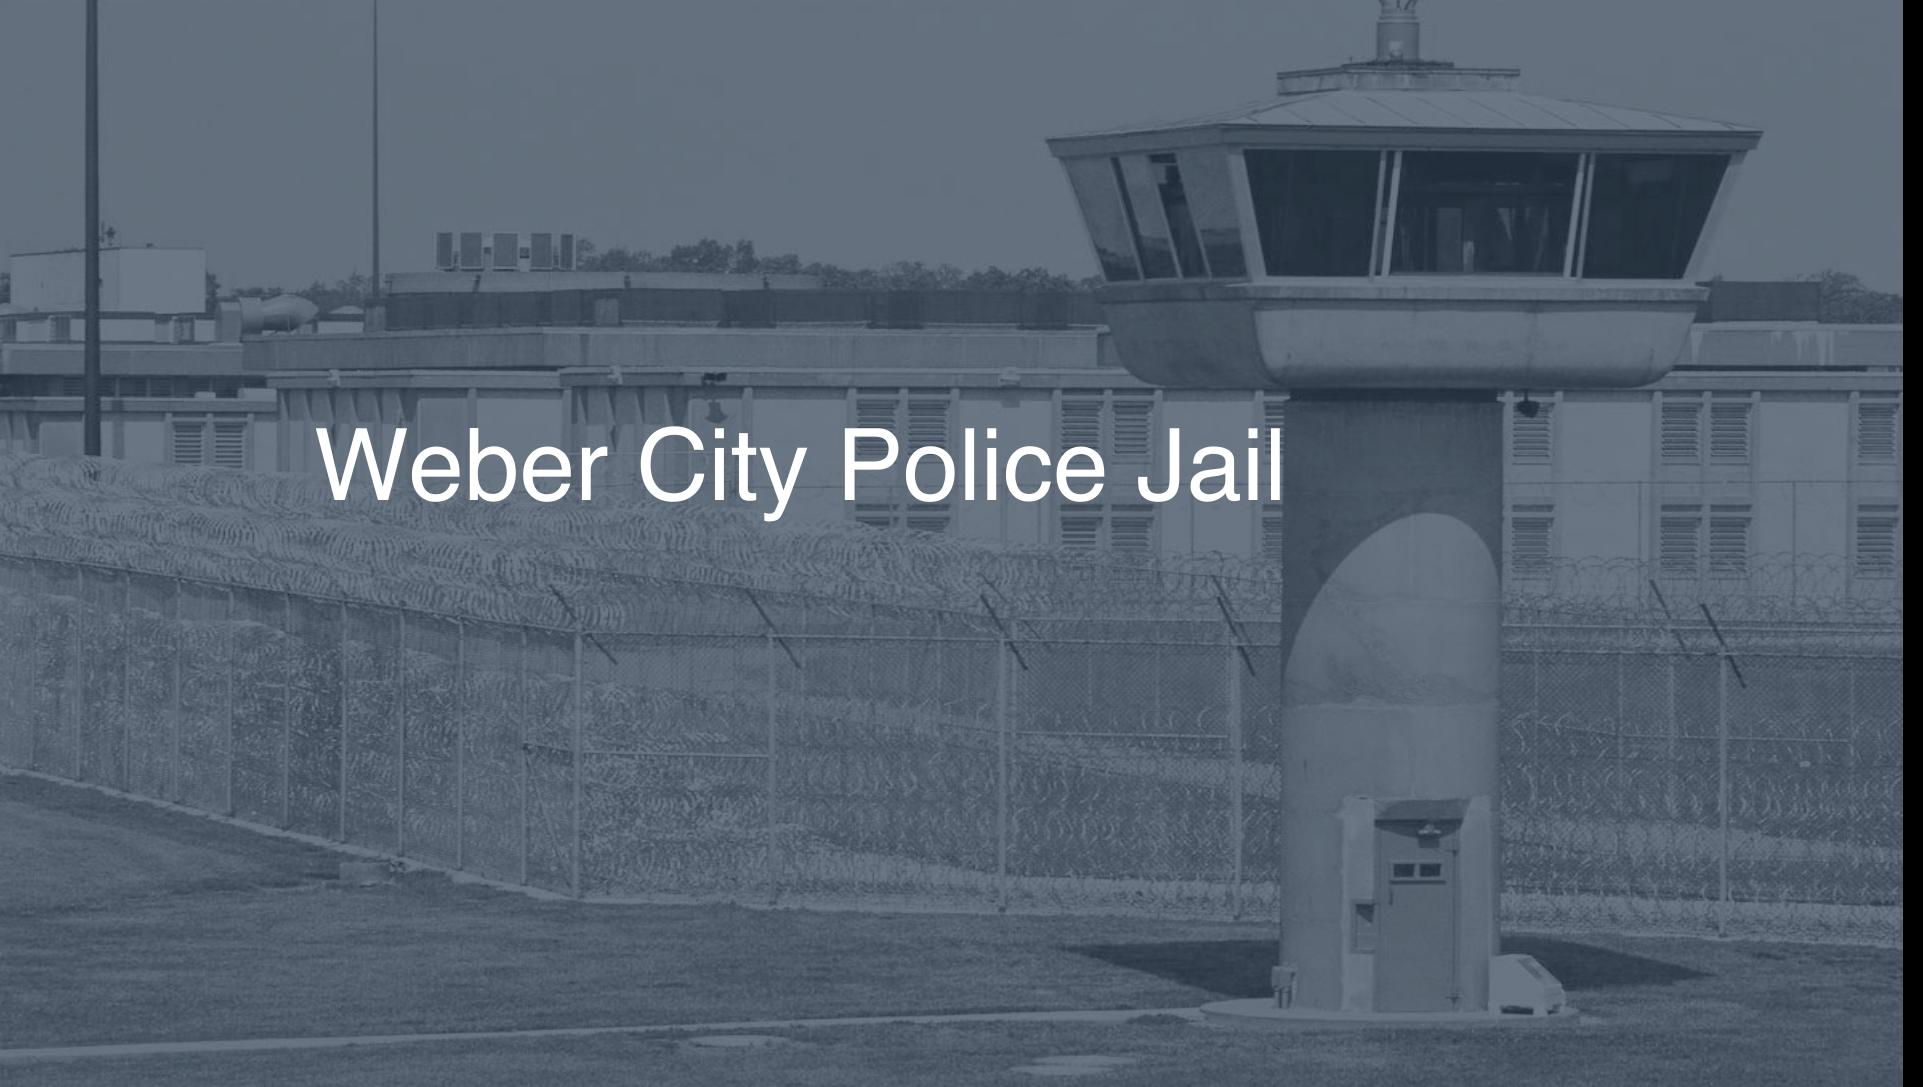 Weber City Police Jail correctional facility picture